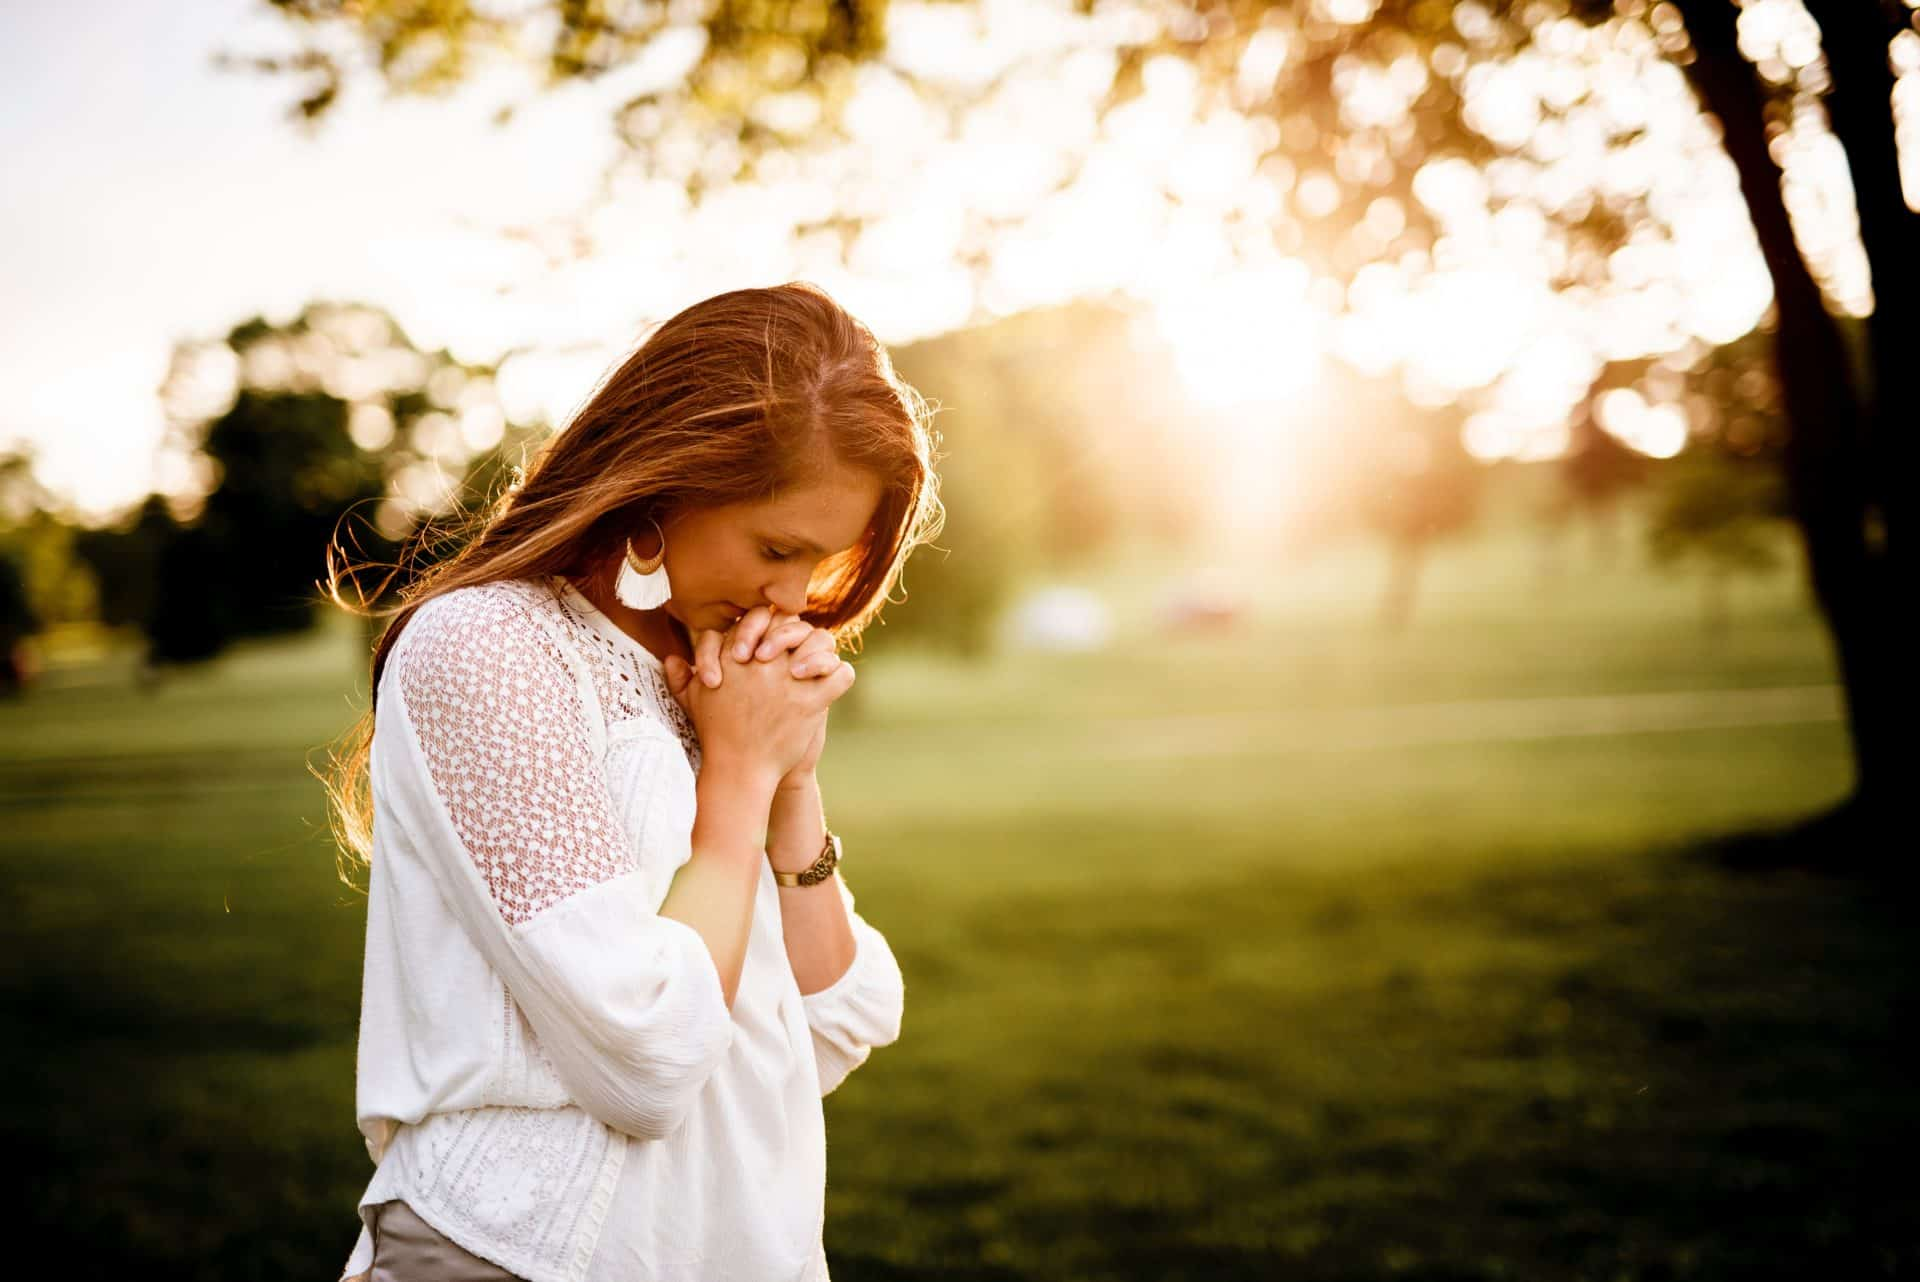 6 Things to Remember When God Doesn't Fix It